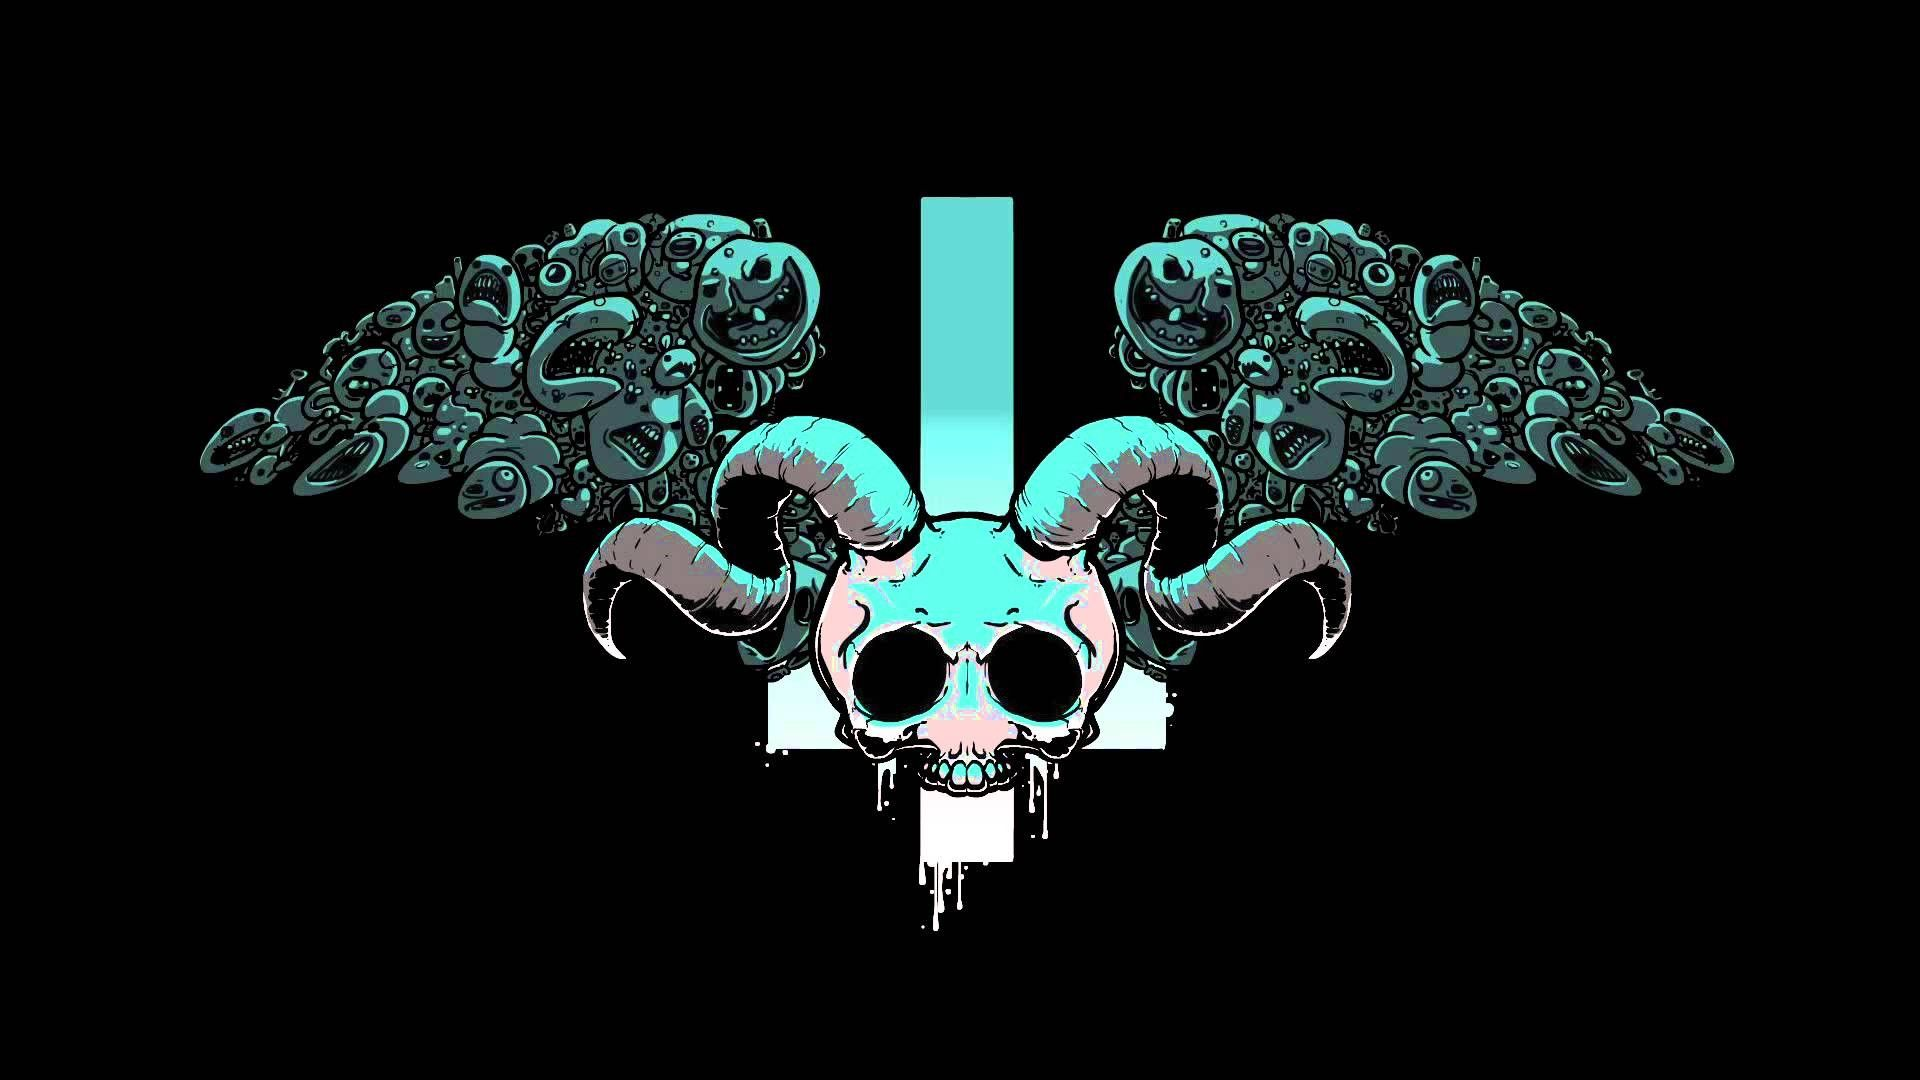 The Binding Of Isaac Afterbirth Wallpapers Best Hd Game The